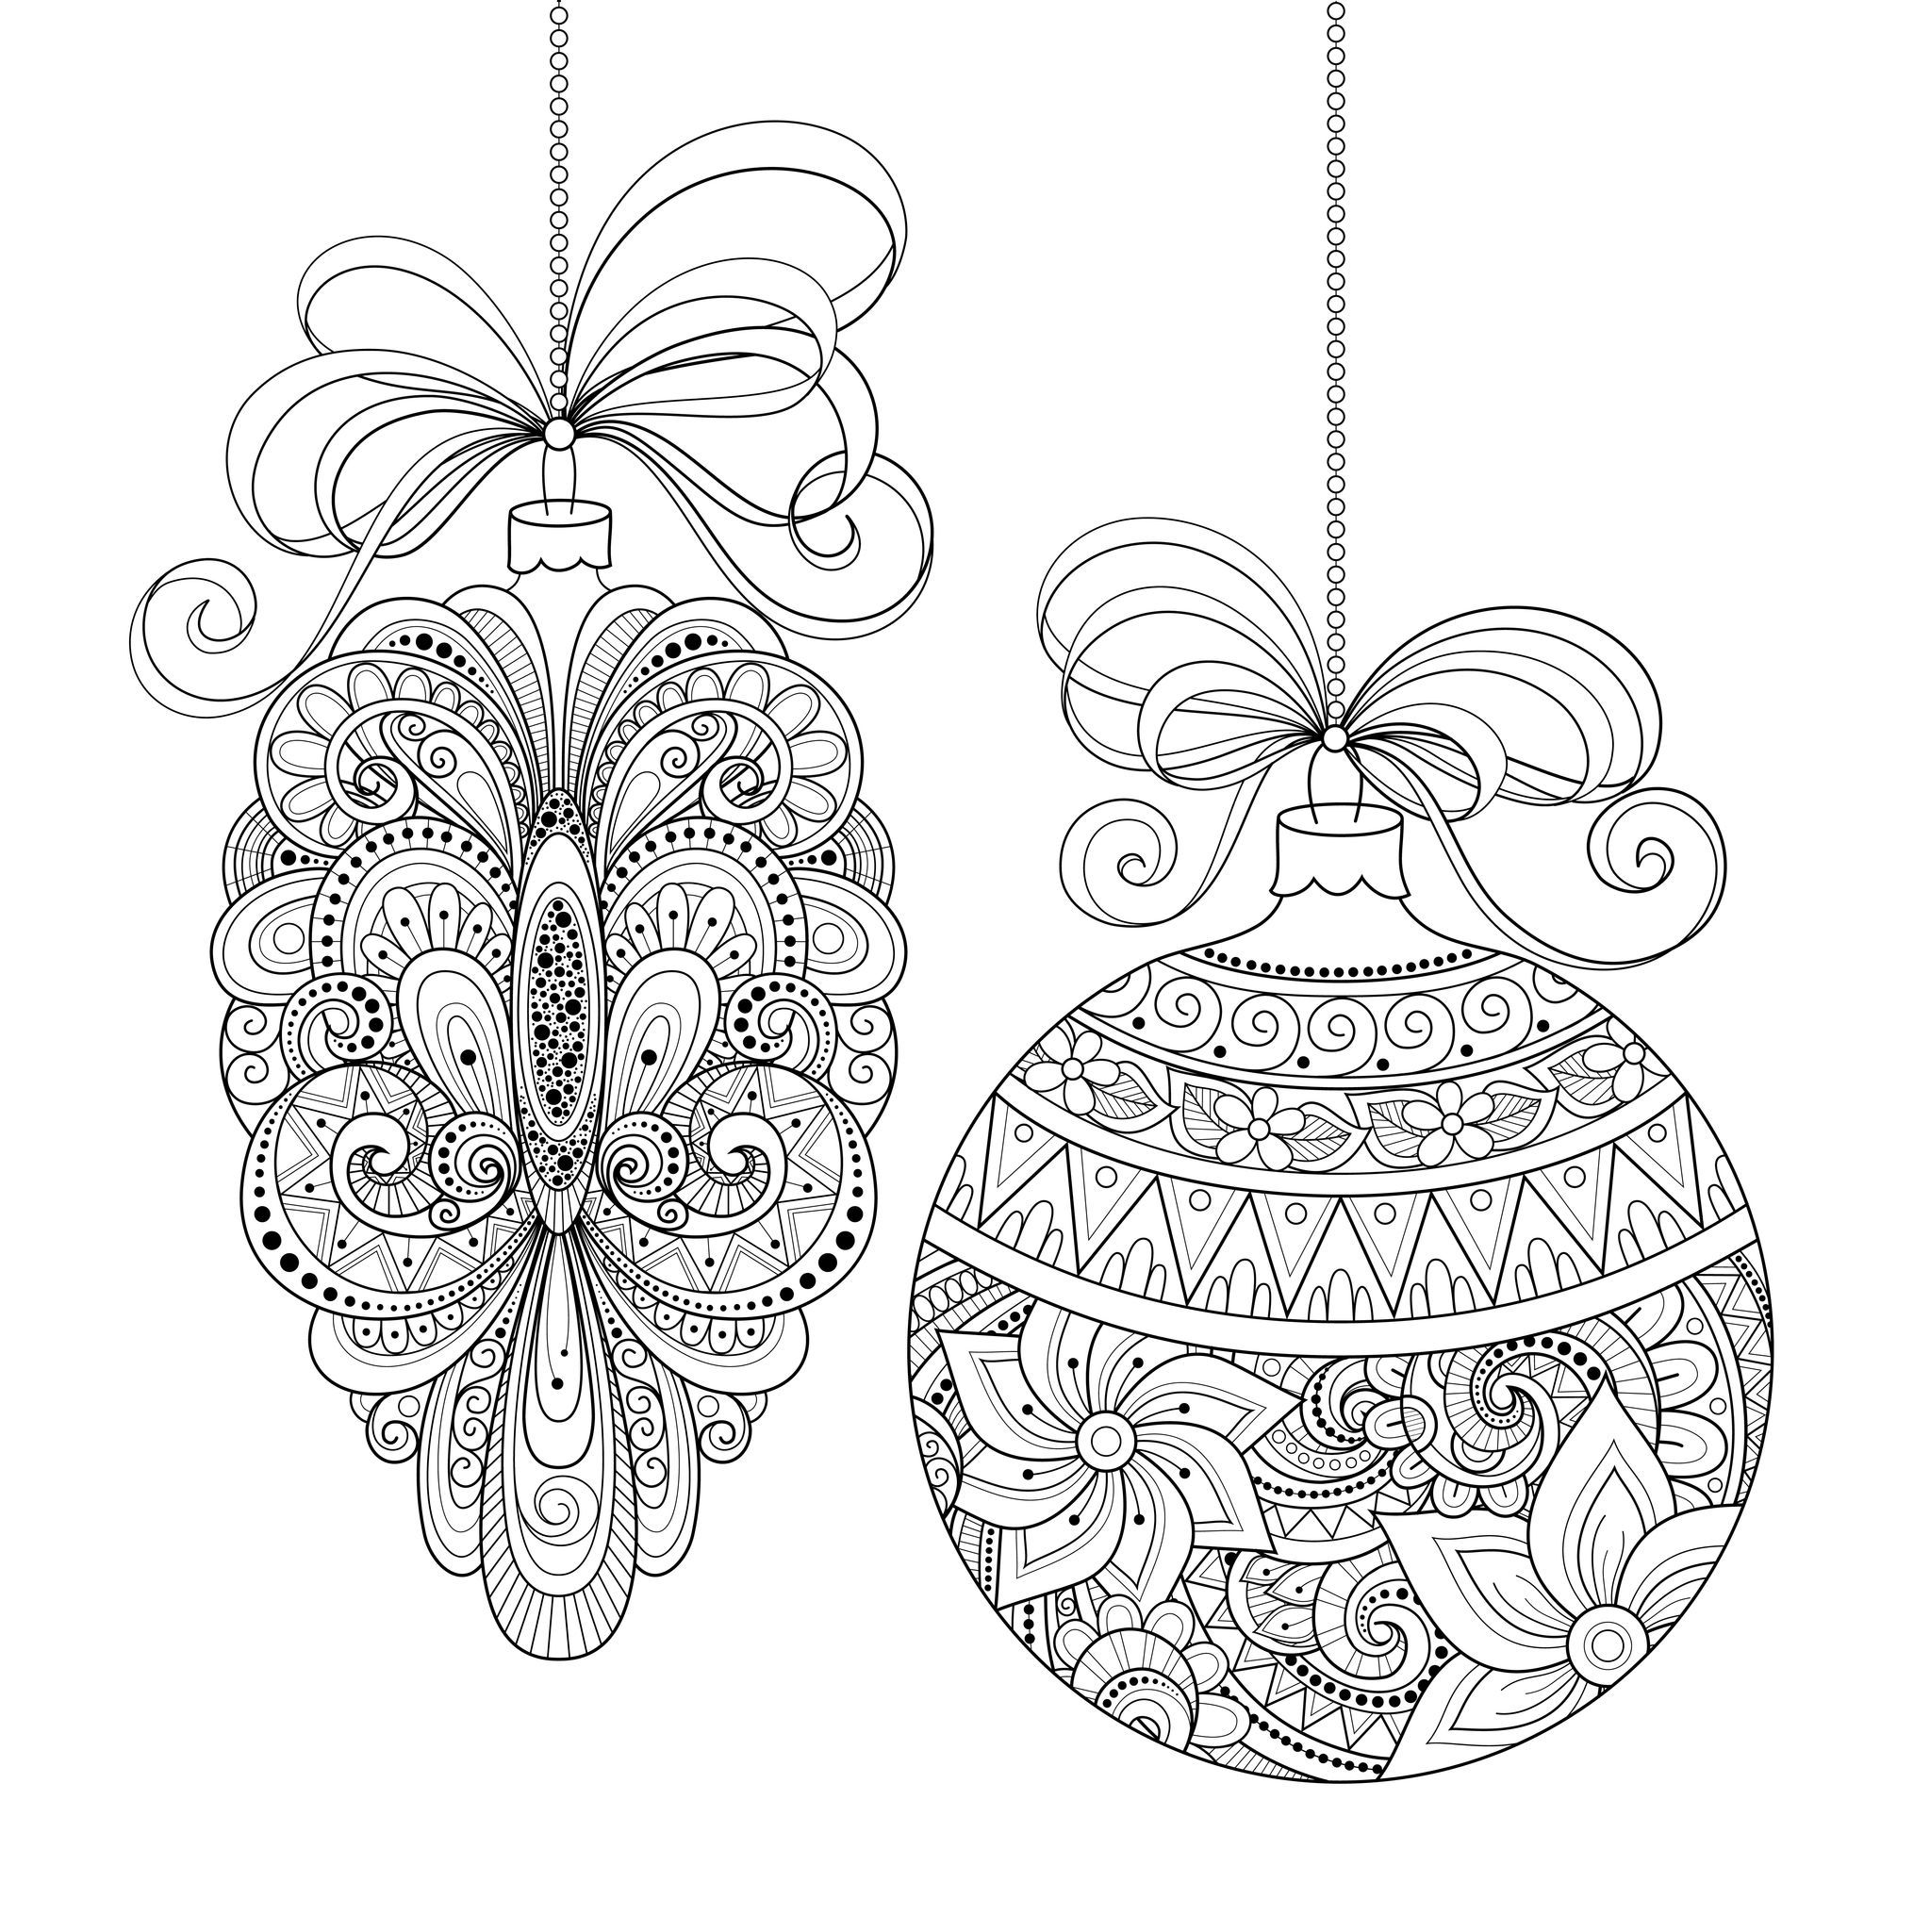 Adult Christmas Ornaments By Irinarivoruchko Coloring Pages Printable And Book To Print For Free Find More Online Kids